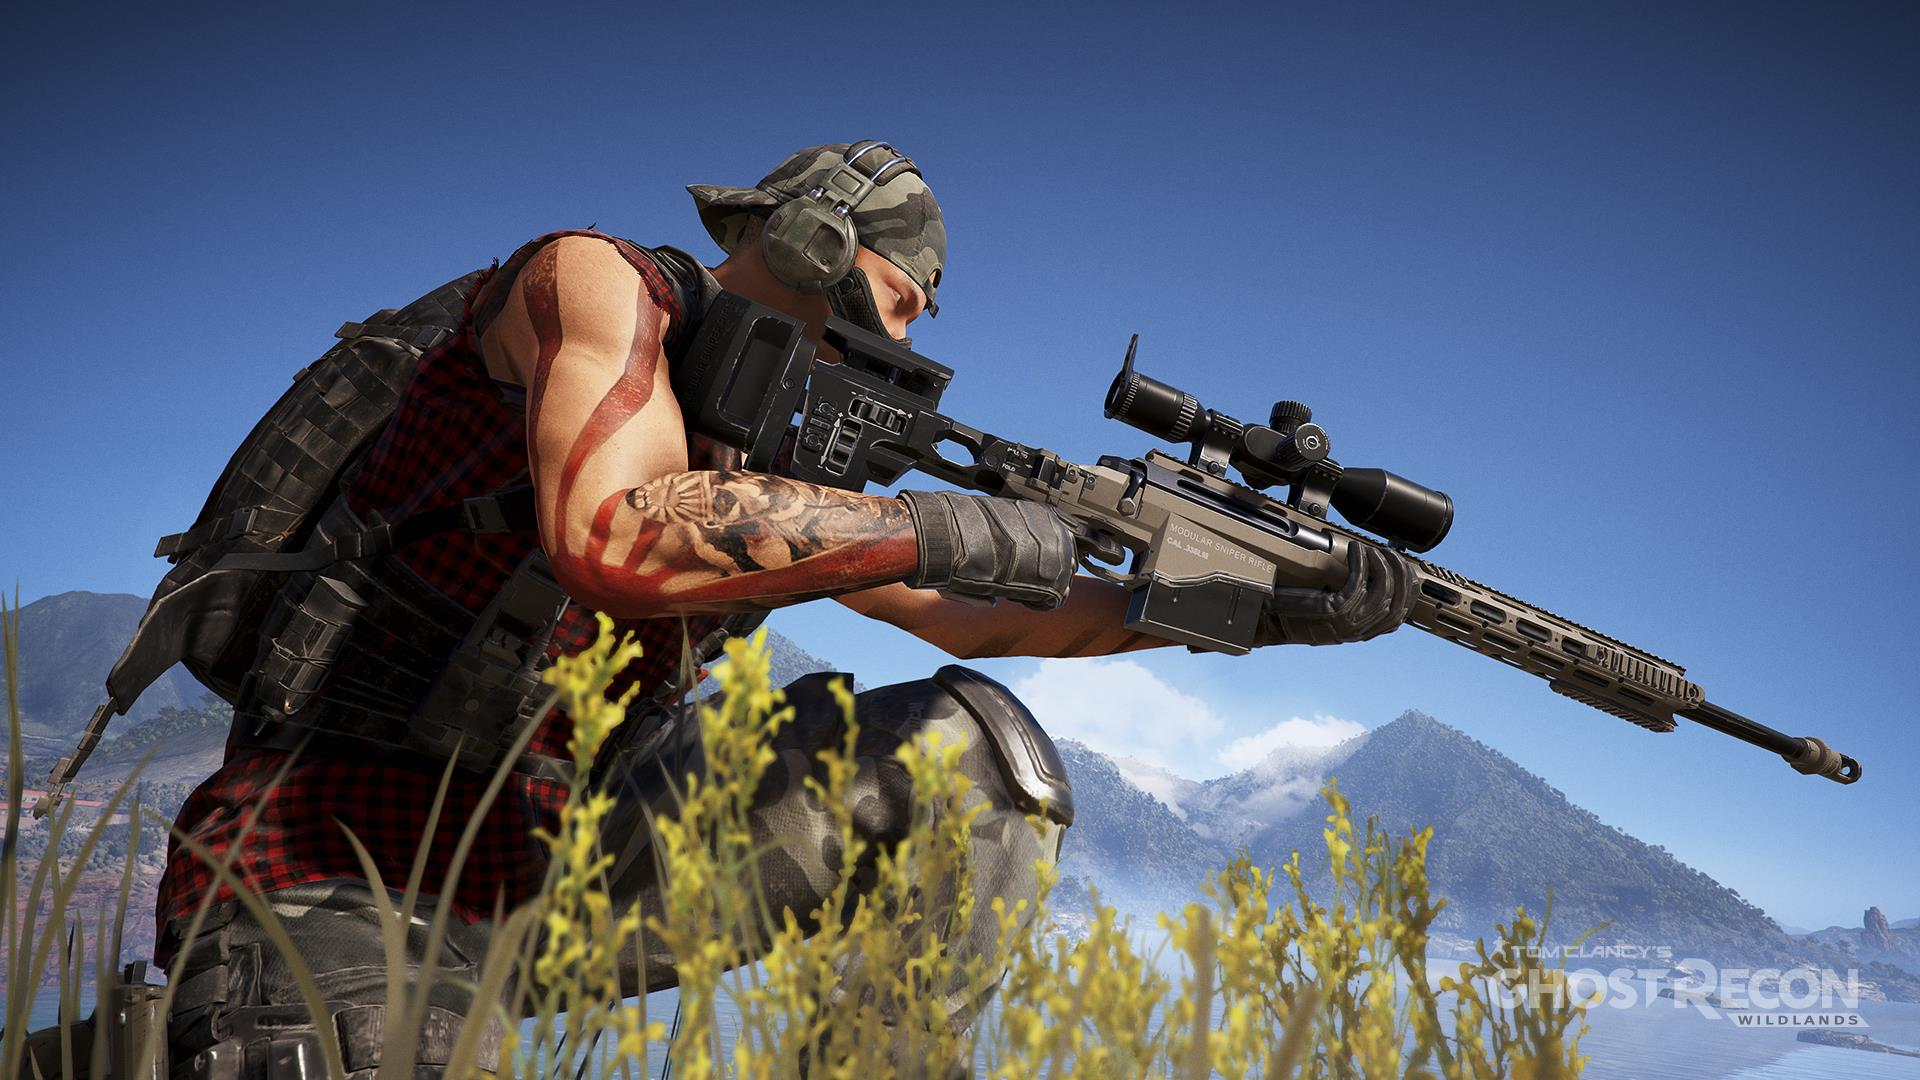 tom clancys the division map size with In Ghost Recon Wildlands You Can Customize Your Appearance With Beards And Camo Up Your Weapons on 6 Assorted Books c503fc43 3094 4c24 9436 Ed993c00b83c additionally Horizon Zero Dawn Trailer Gets New Psx Trailer besides Ghost Recon Wildlands likewise In Ghost Recon Wildlands You Can Customize Your Appearance With Beards And Camo Up Your Weapons besides Tom Clancys Ghost Recon Wildlands E3 Reveal Trailer.